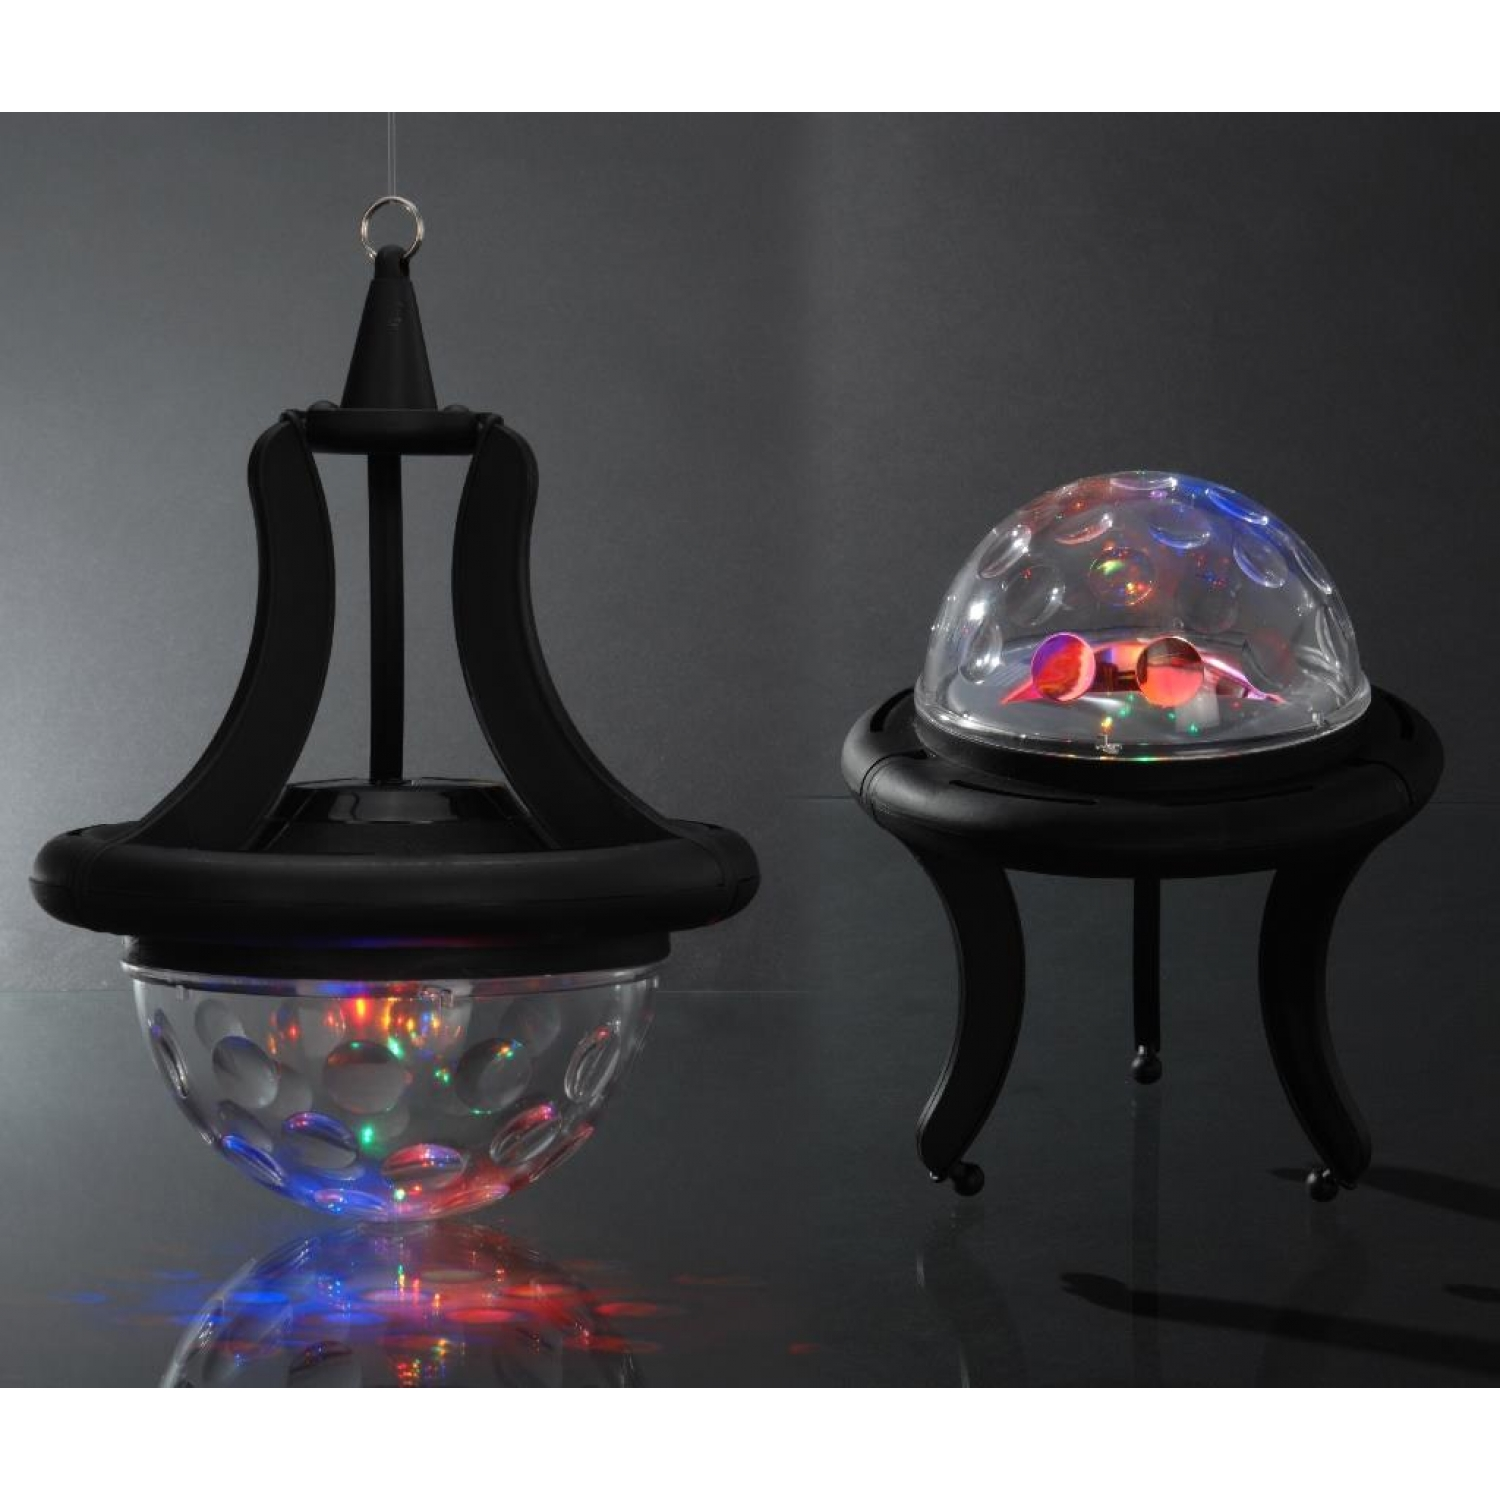 partybeleuchtung led disco lampe party licht 5 99. Black Bedroom Furniture Sets. Home Design Ideas